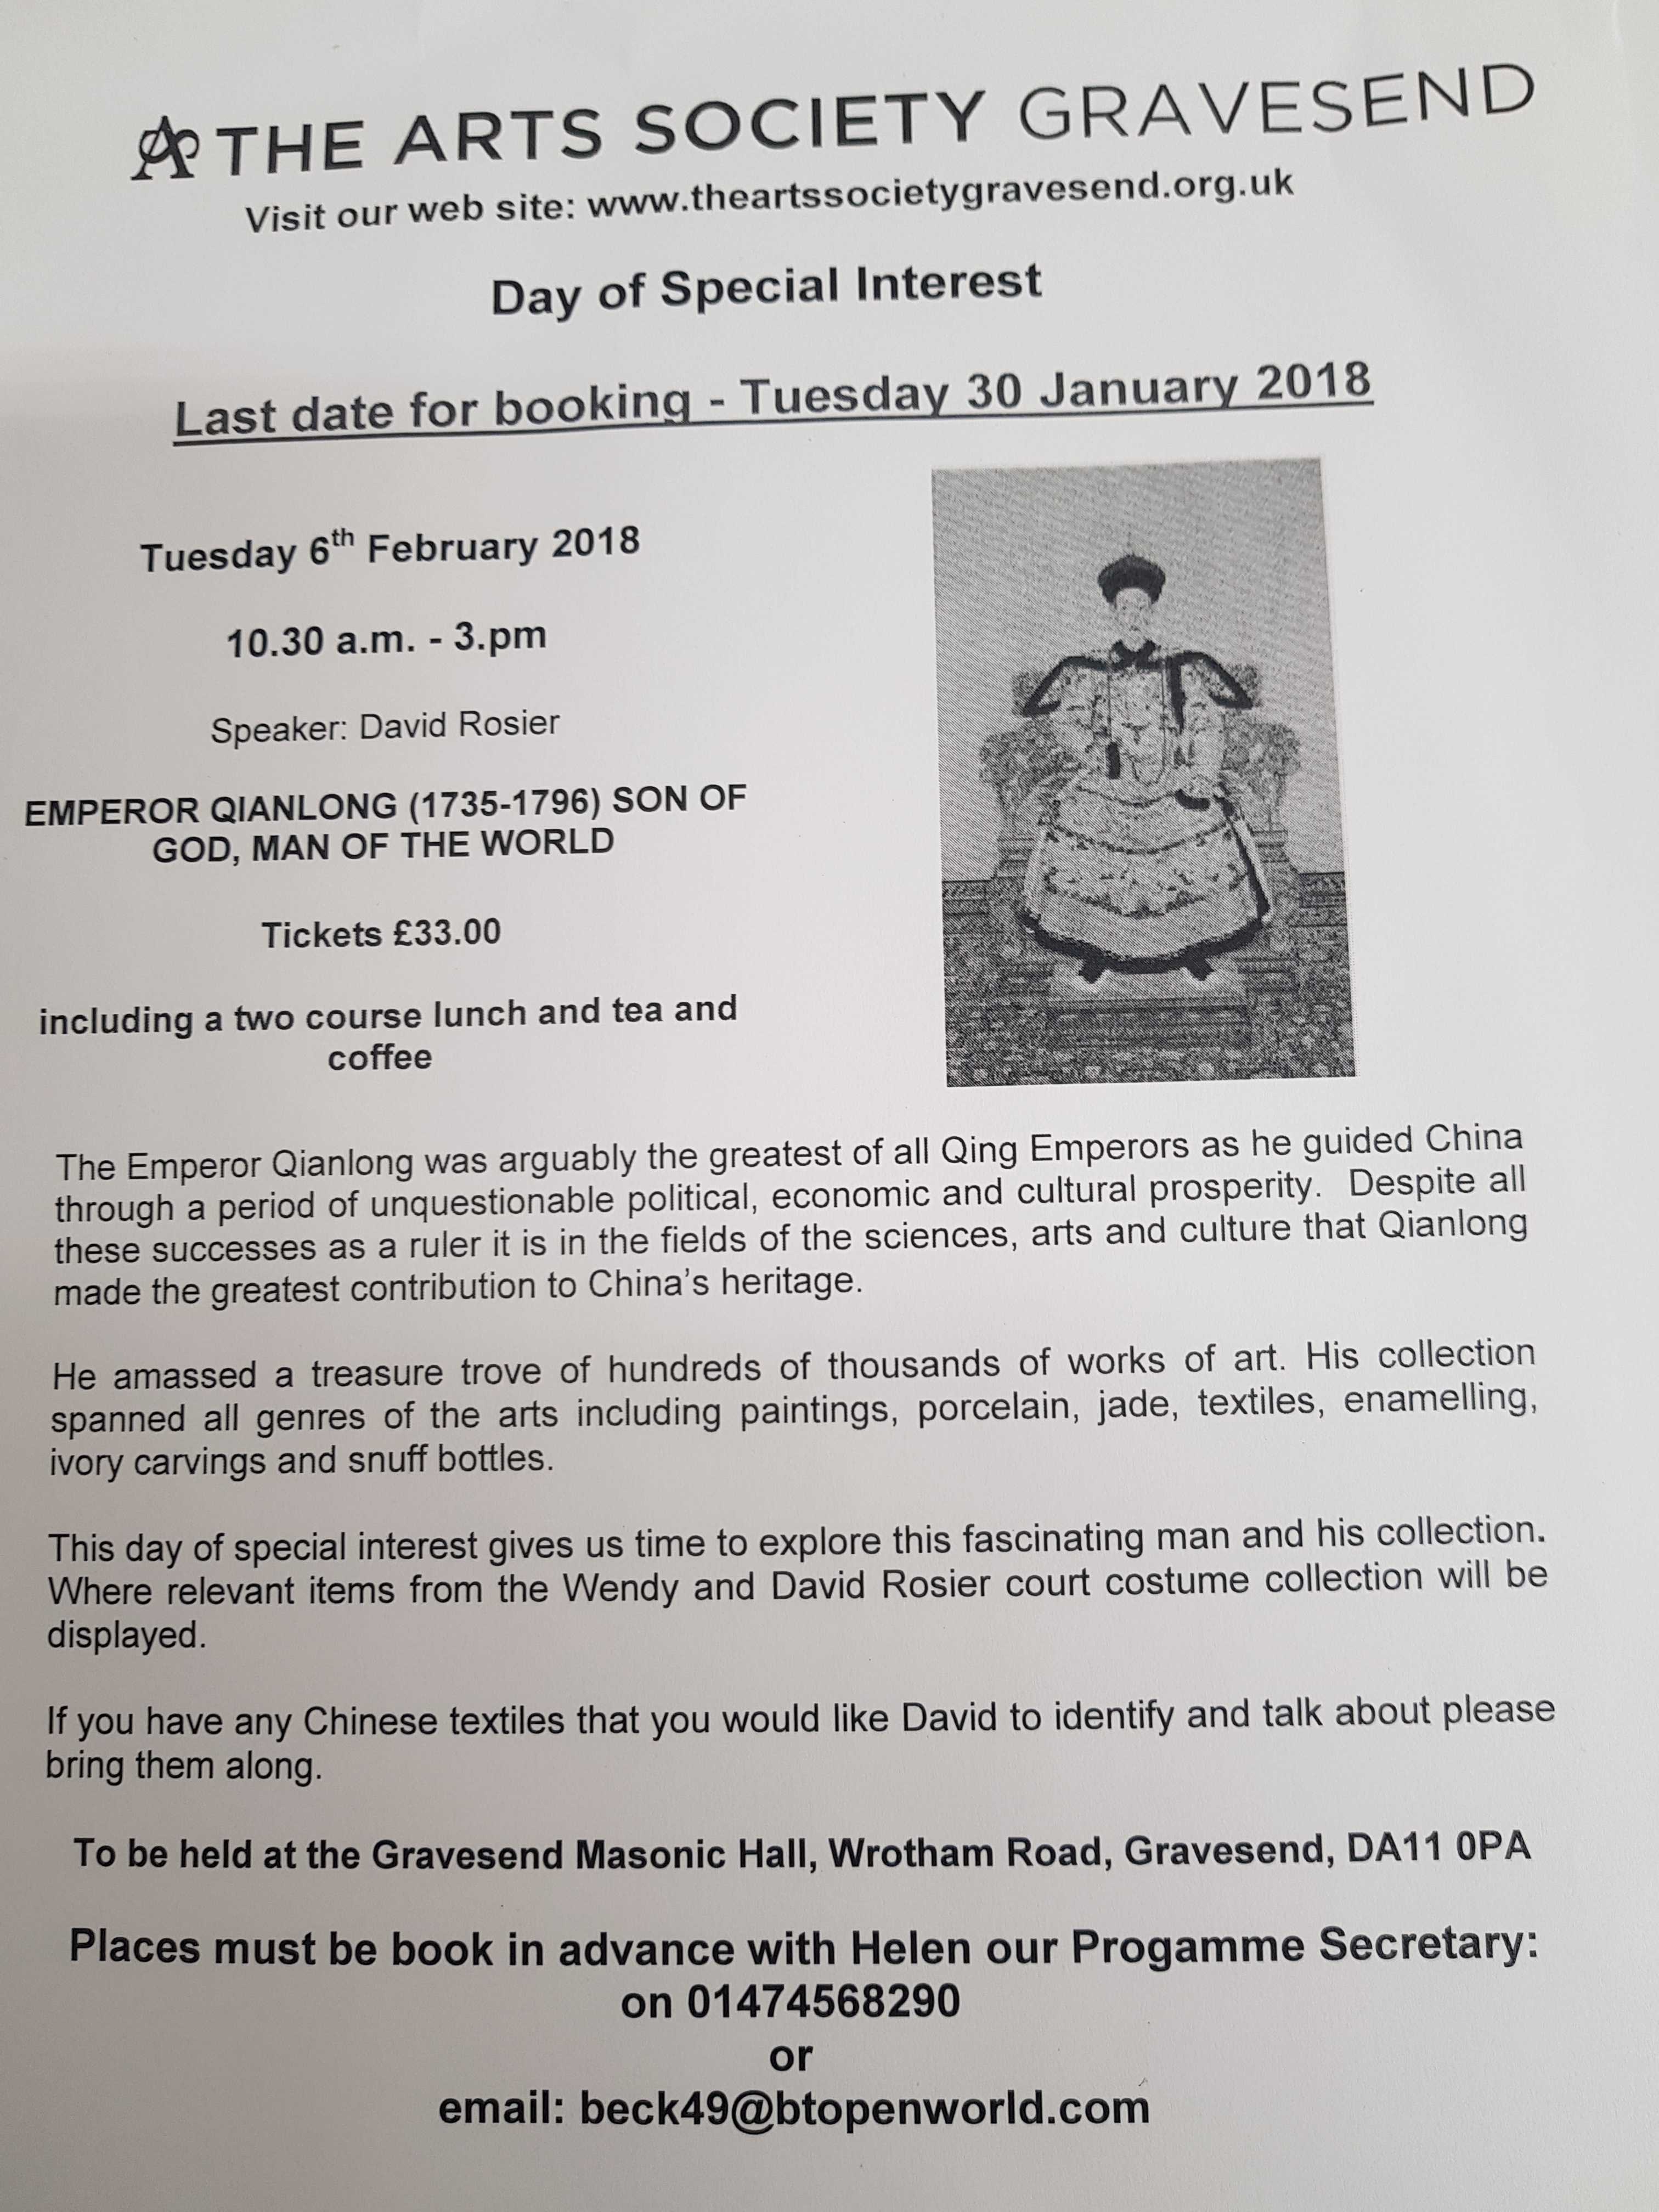 Day of Special Interest - Visit Gravesend